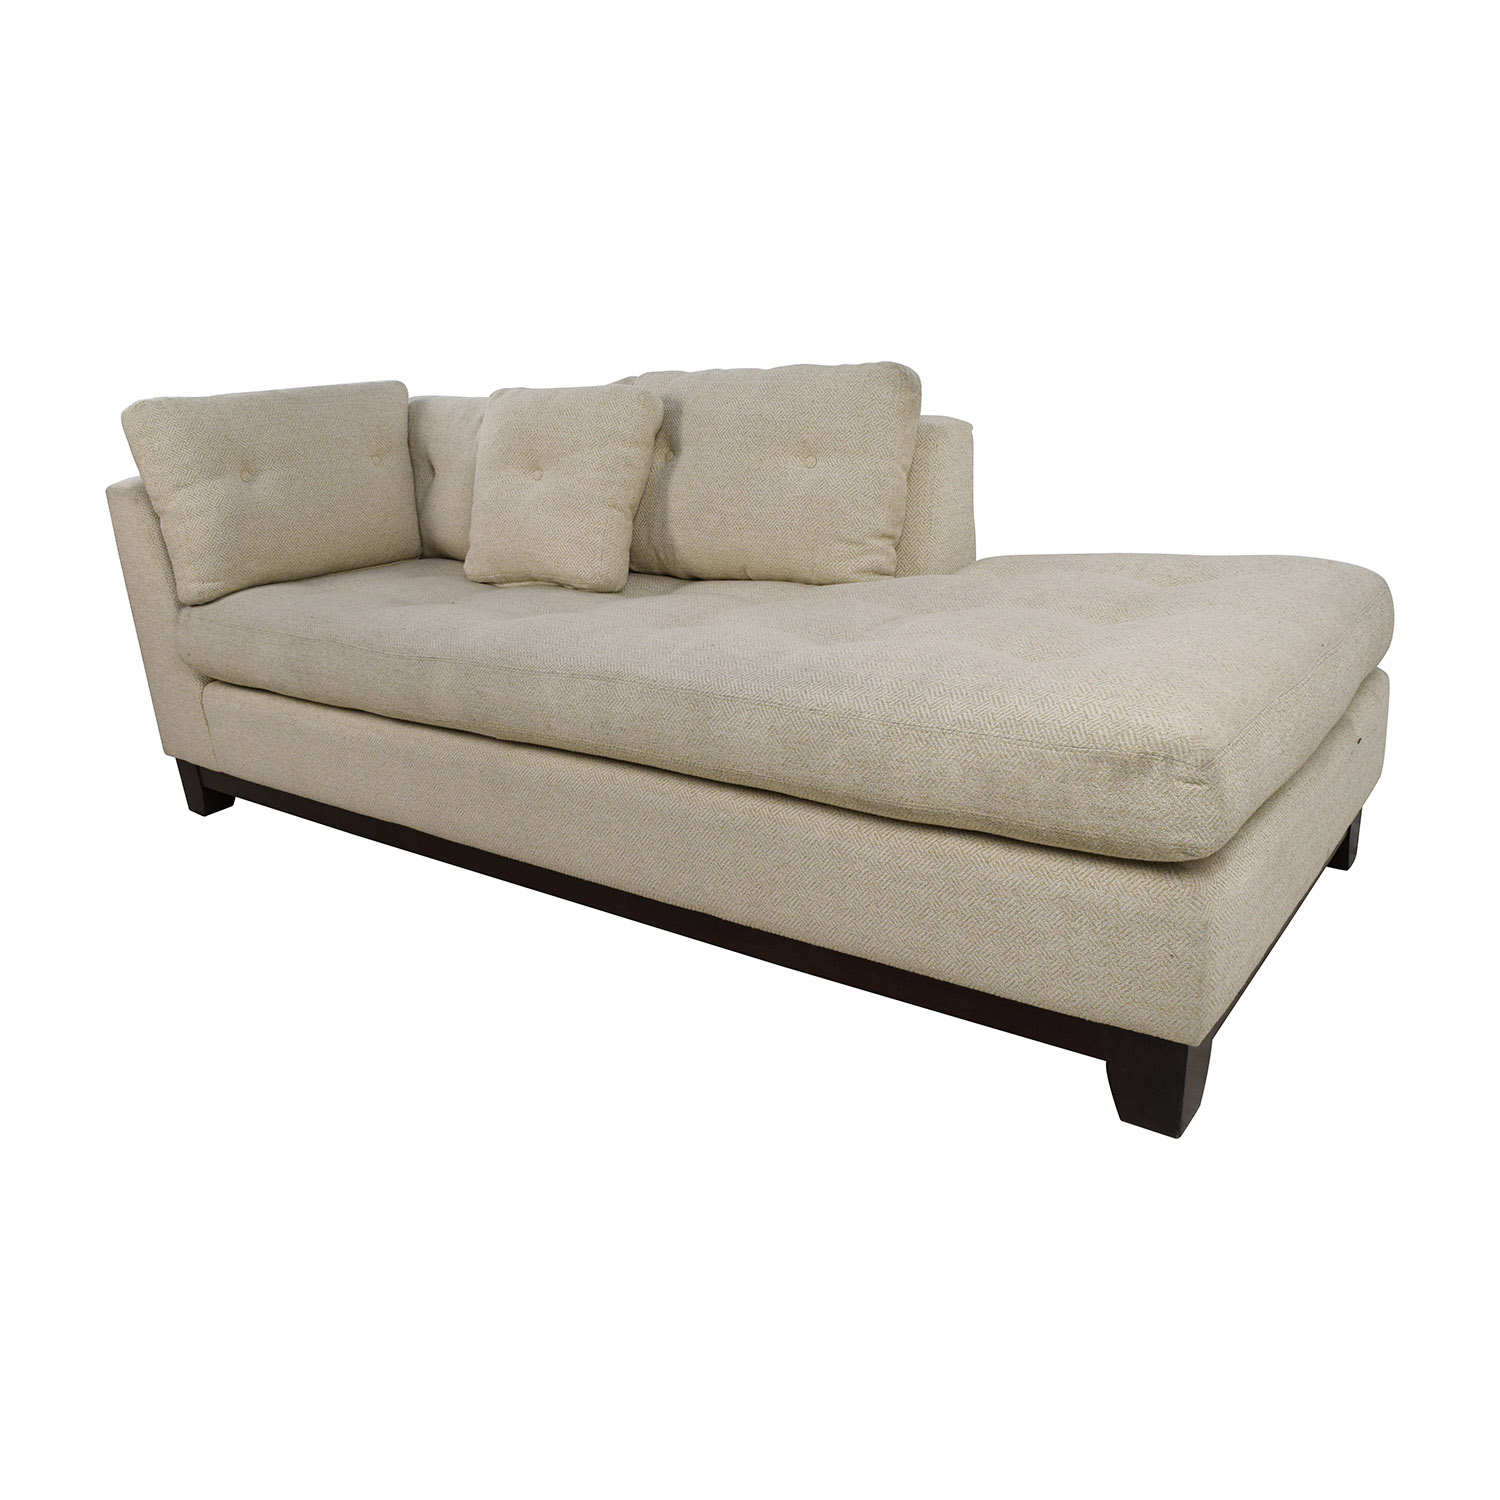 79 off freestyle freestyle tufted natural fabric sofa for Chaise furniture